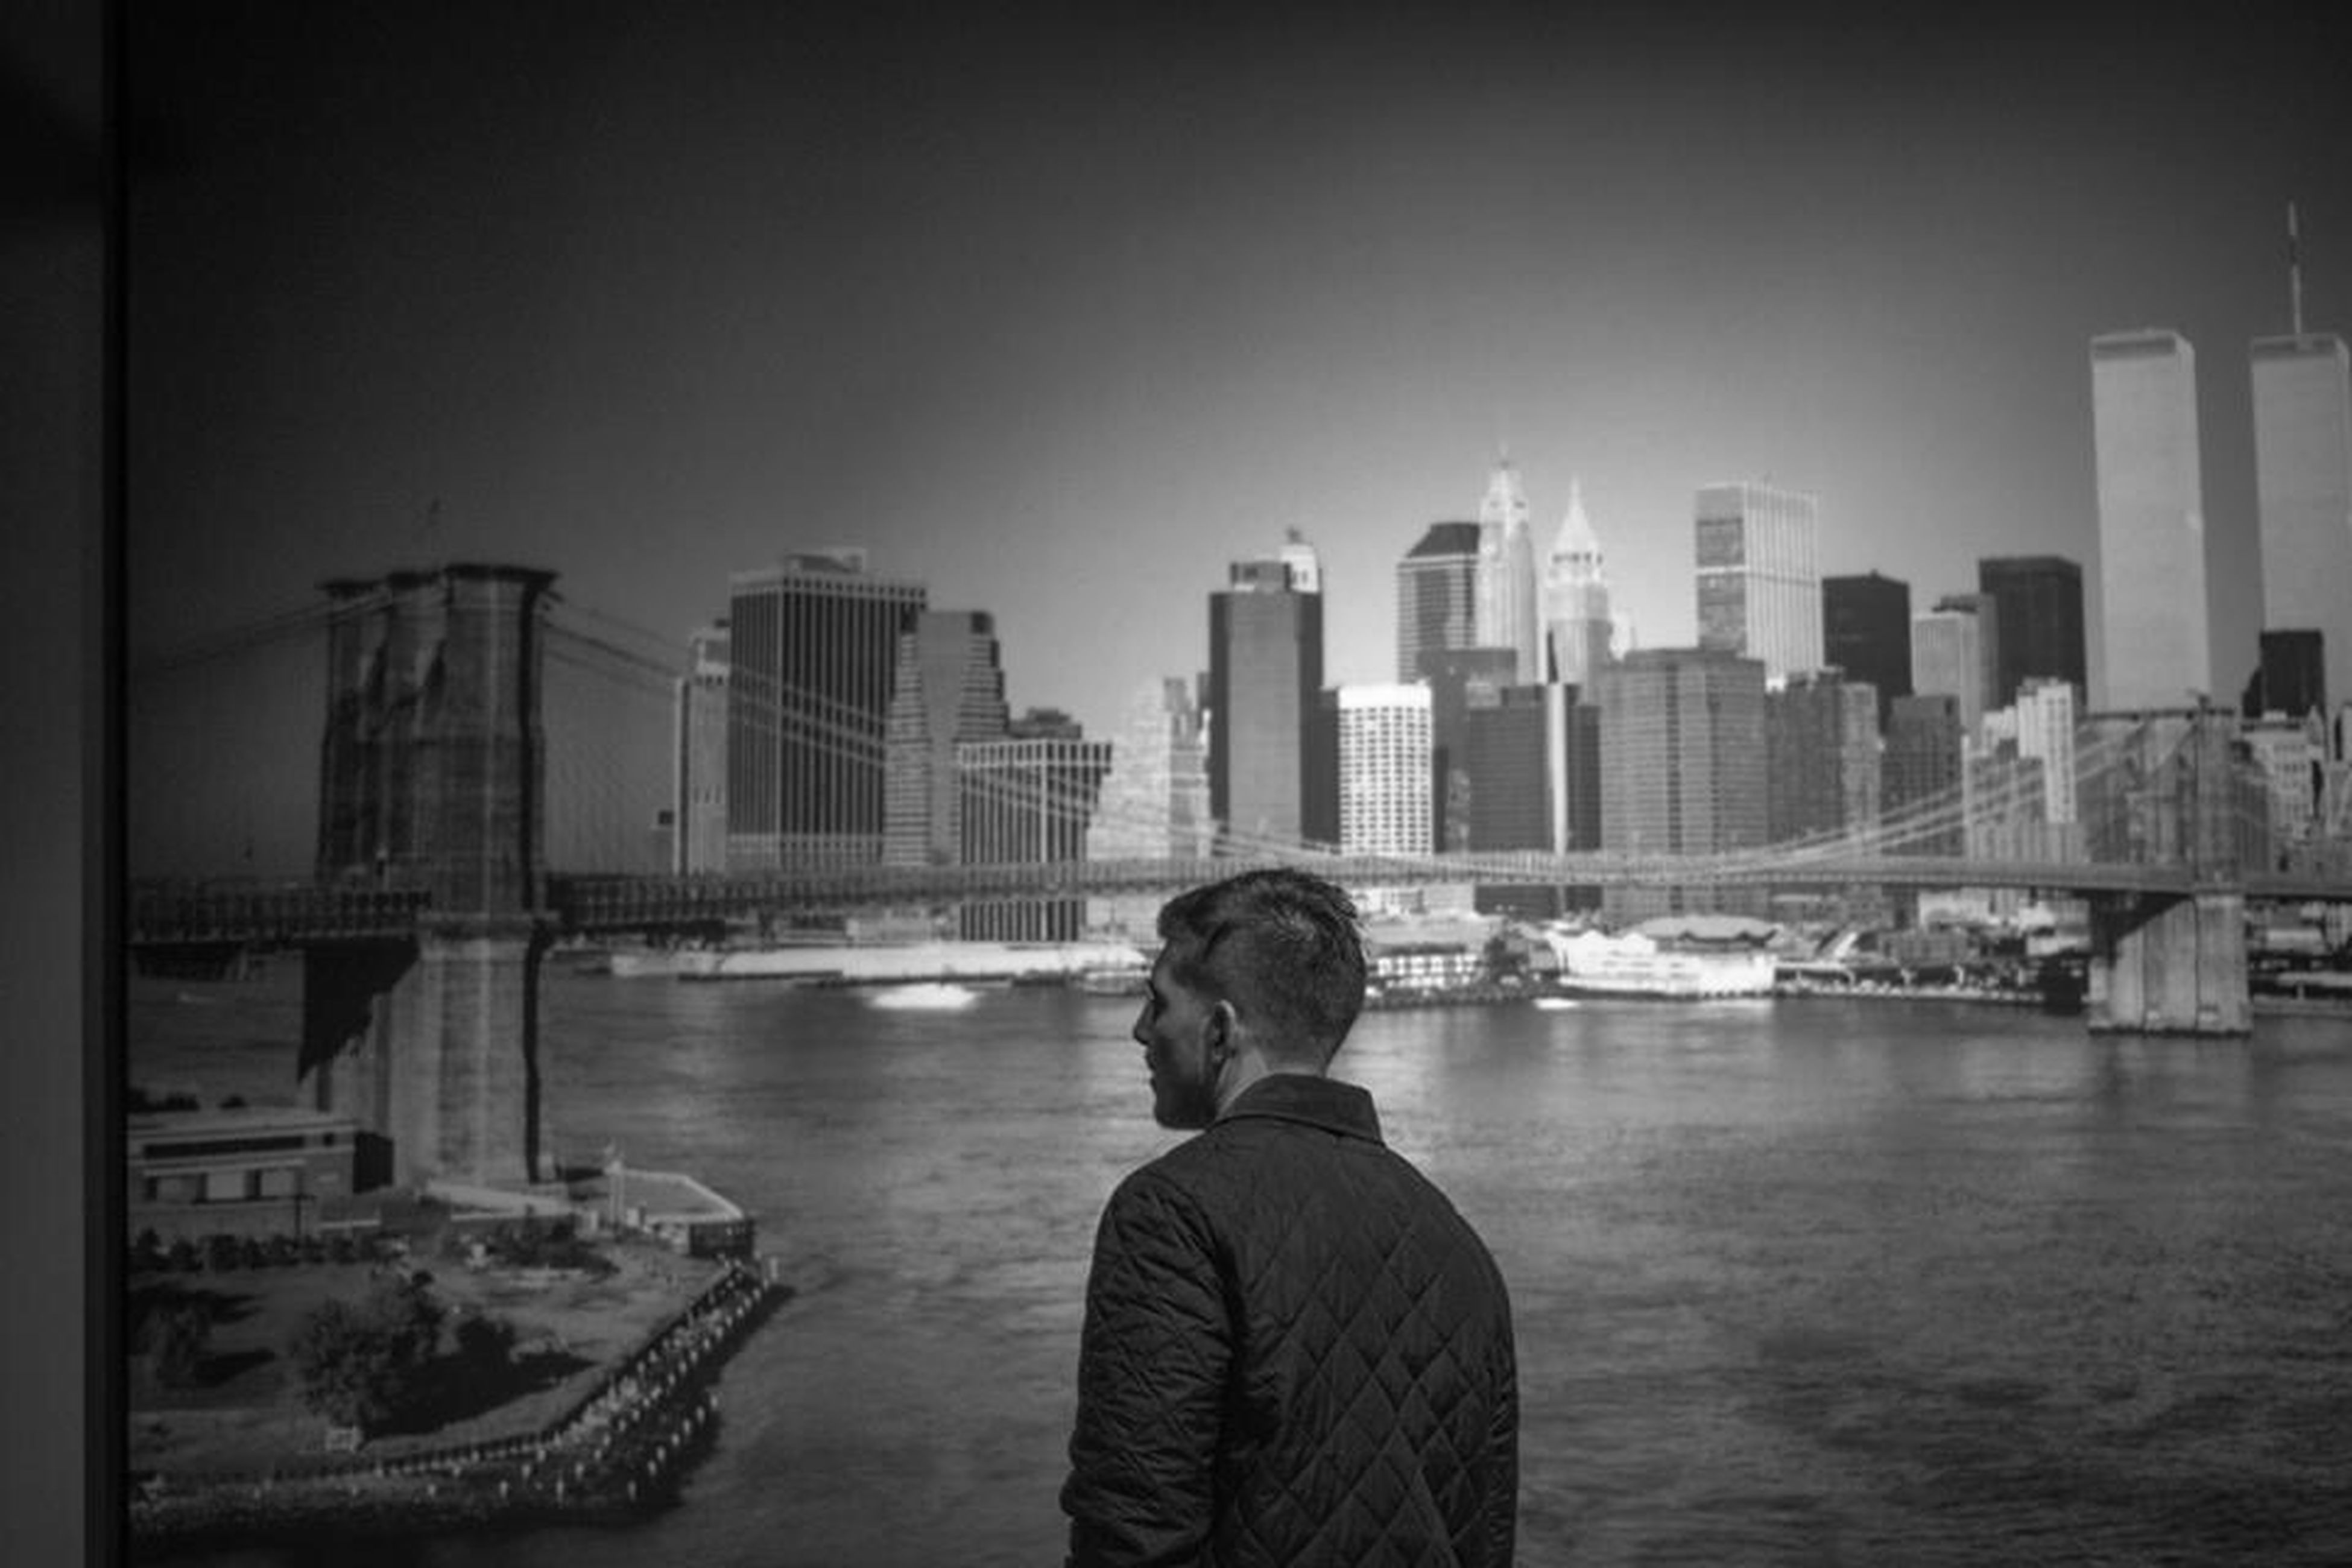 At first glance it is a man in front of the Skyline of Newyorkcity Pre-9/11 , then you follow his gaze to the end of the frame of what turns out to be just a photo. Then you realize the twin towers are actually gone in this photo, and your stomach sinks again. Cityscape Beauty